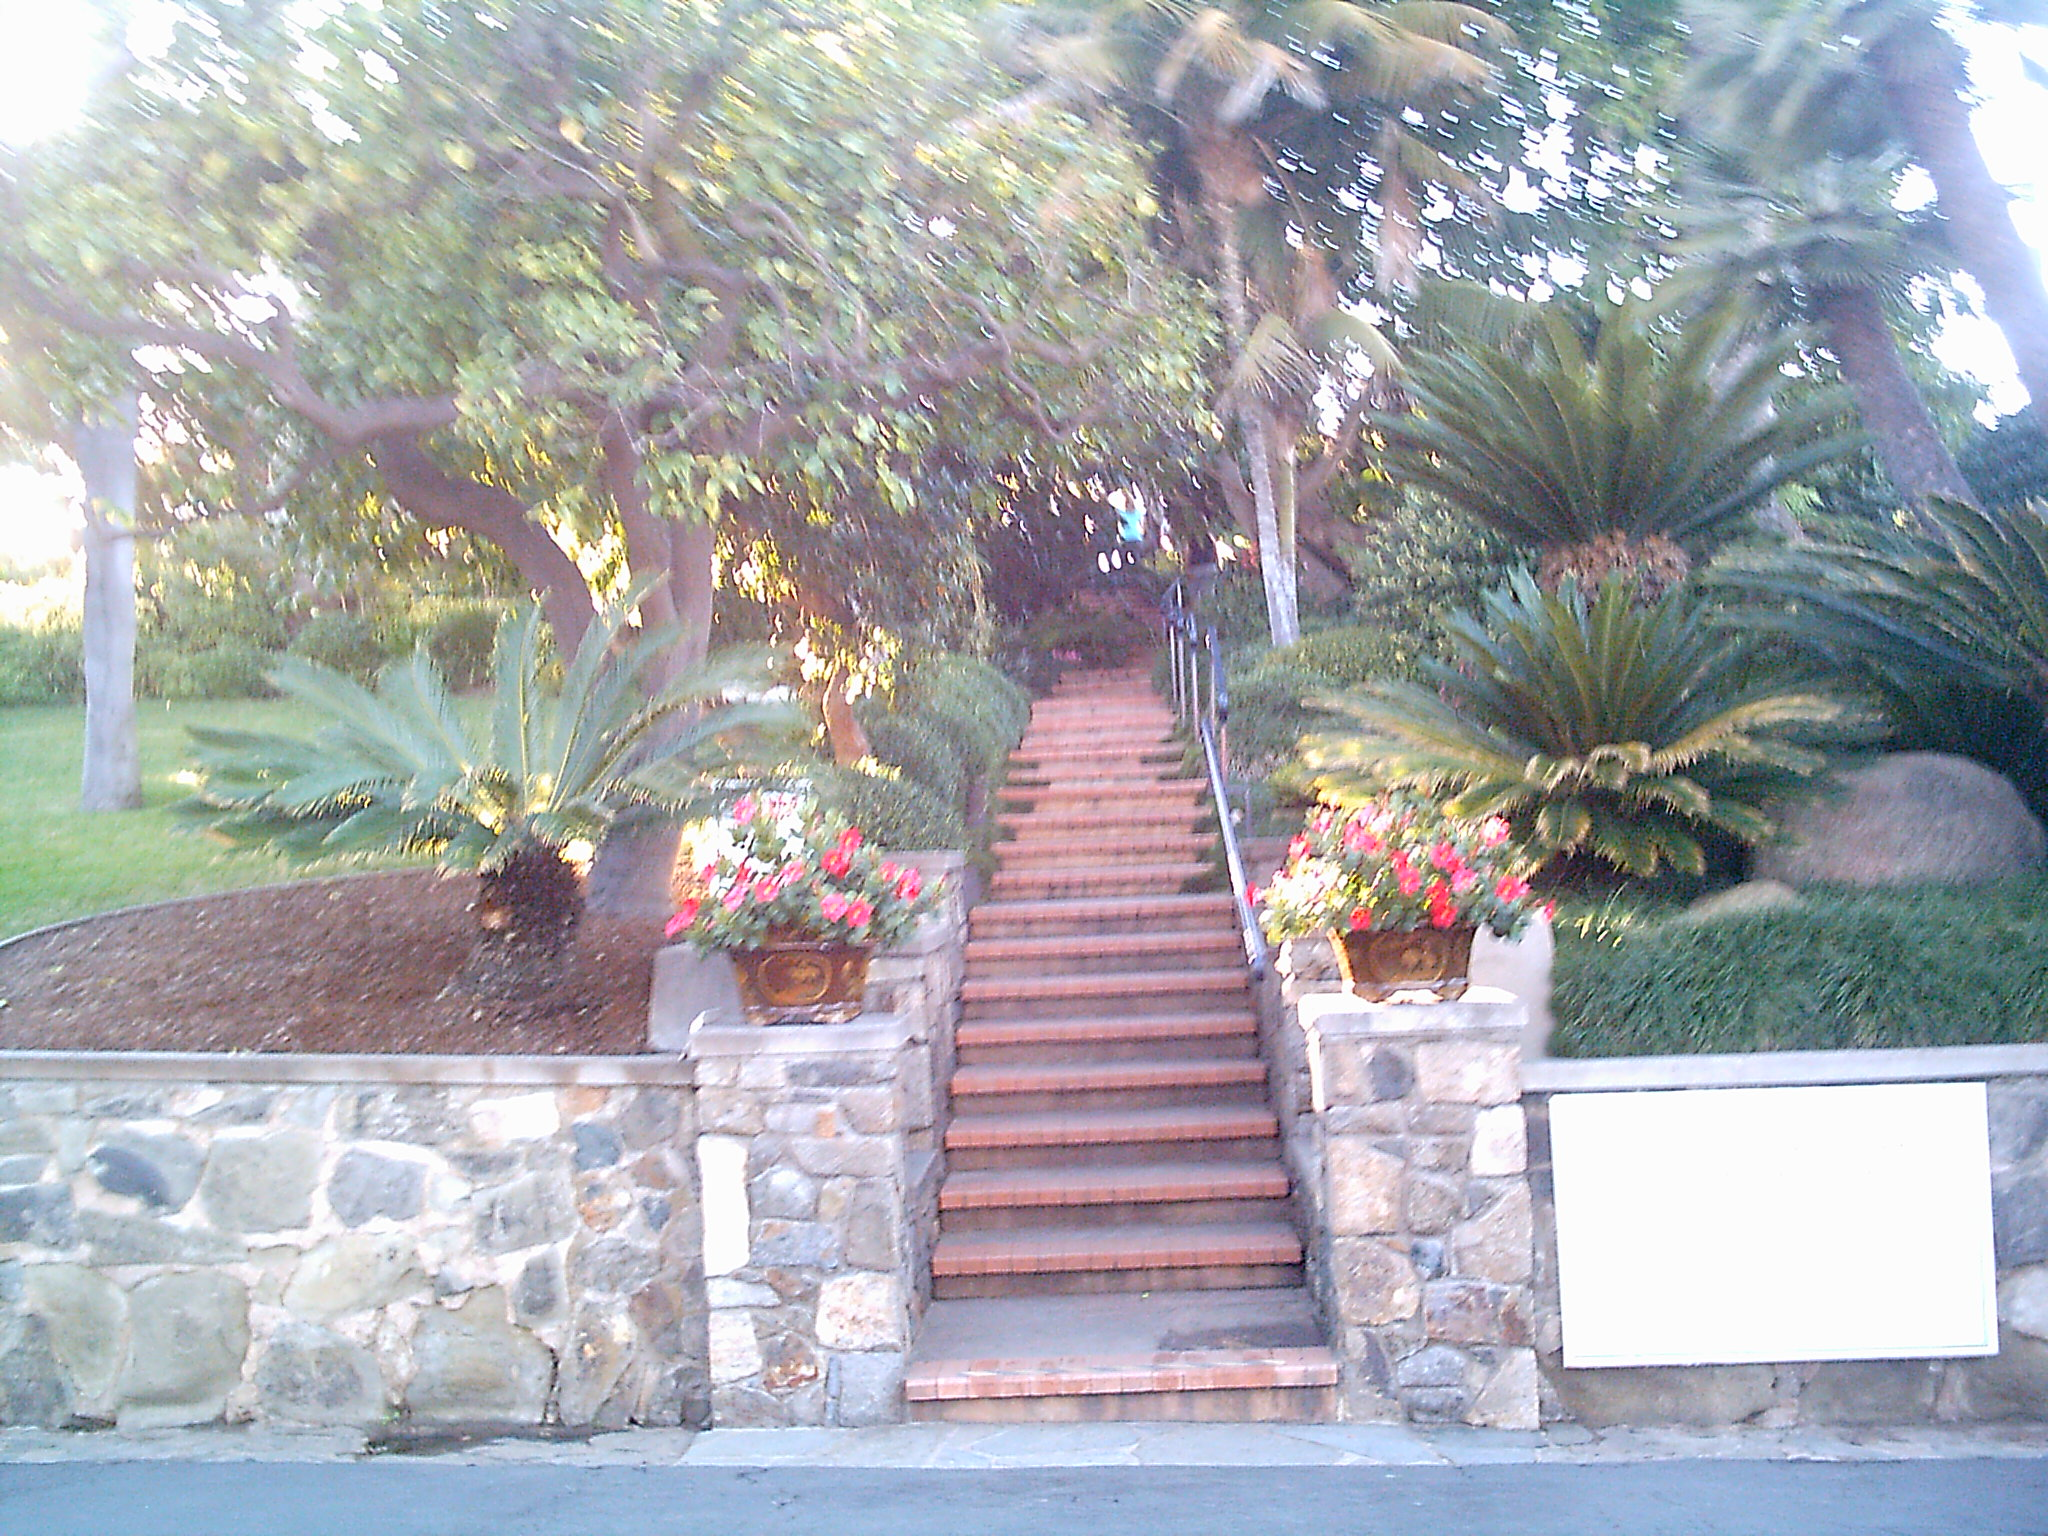 Immediately upon entering the Self-Realization Fellowship Meditation Gardens